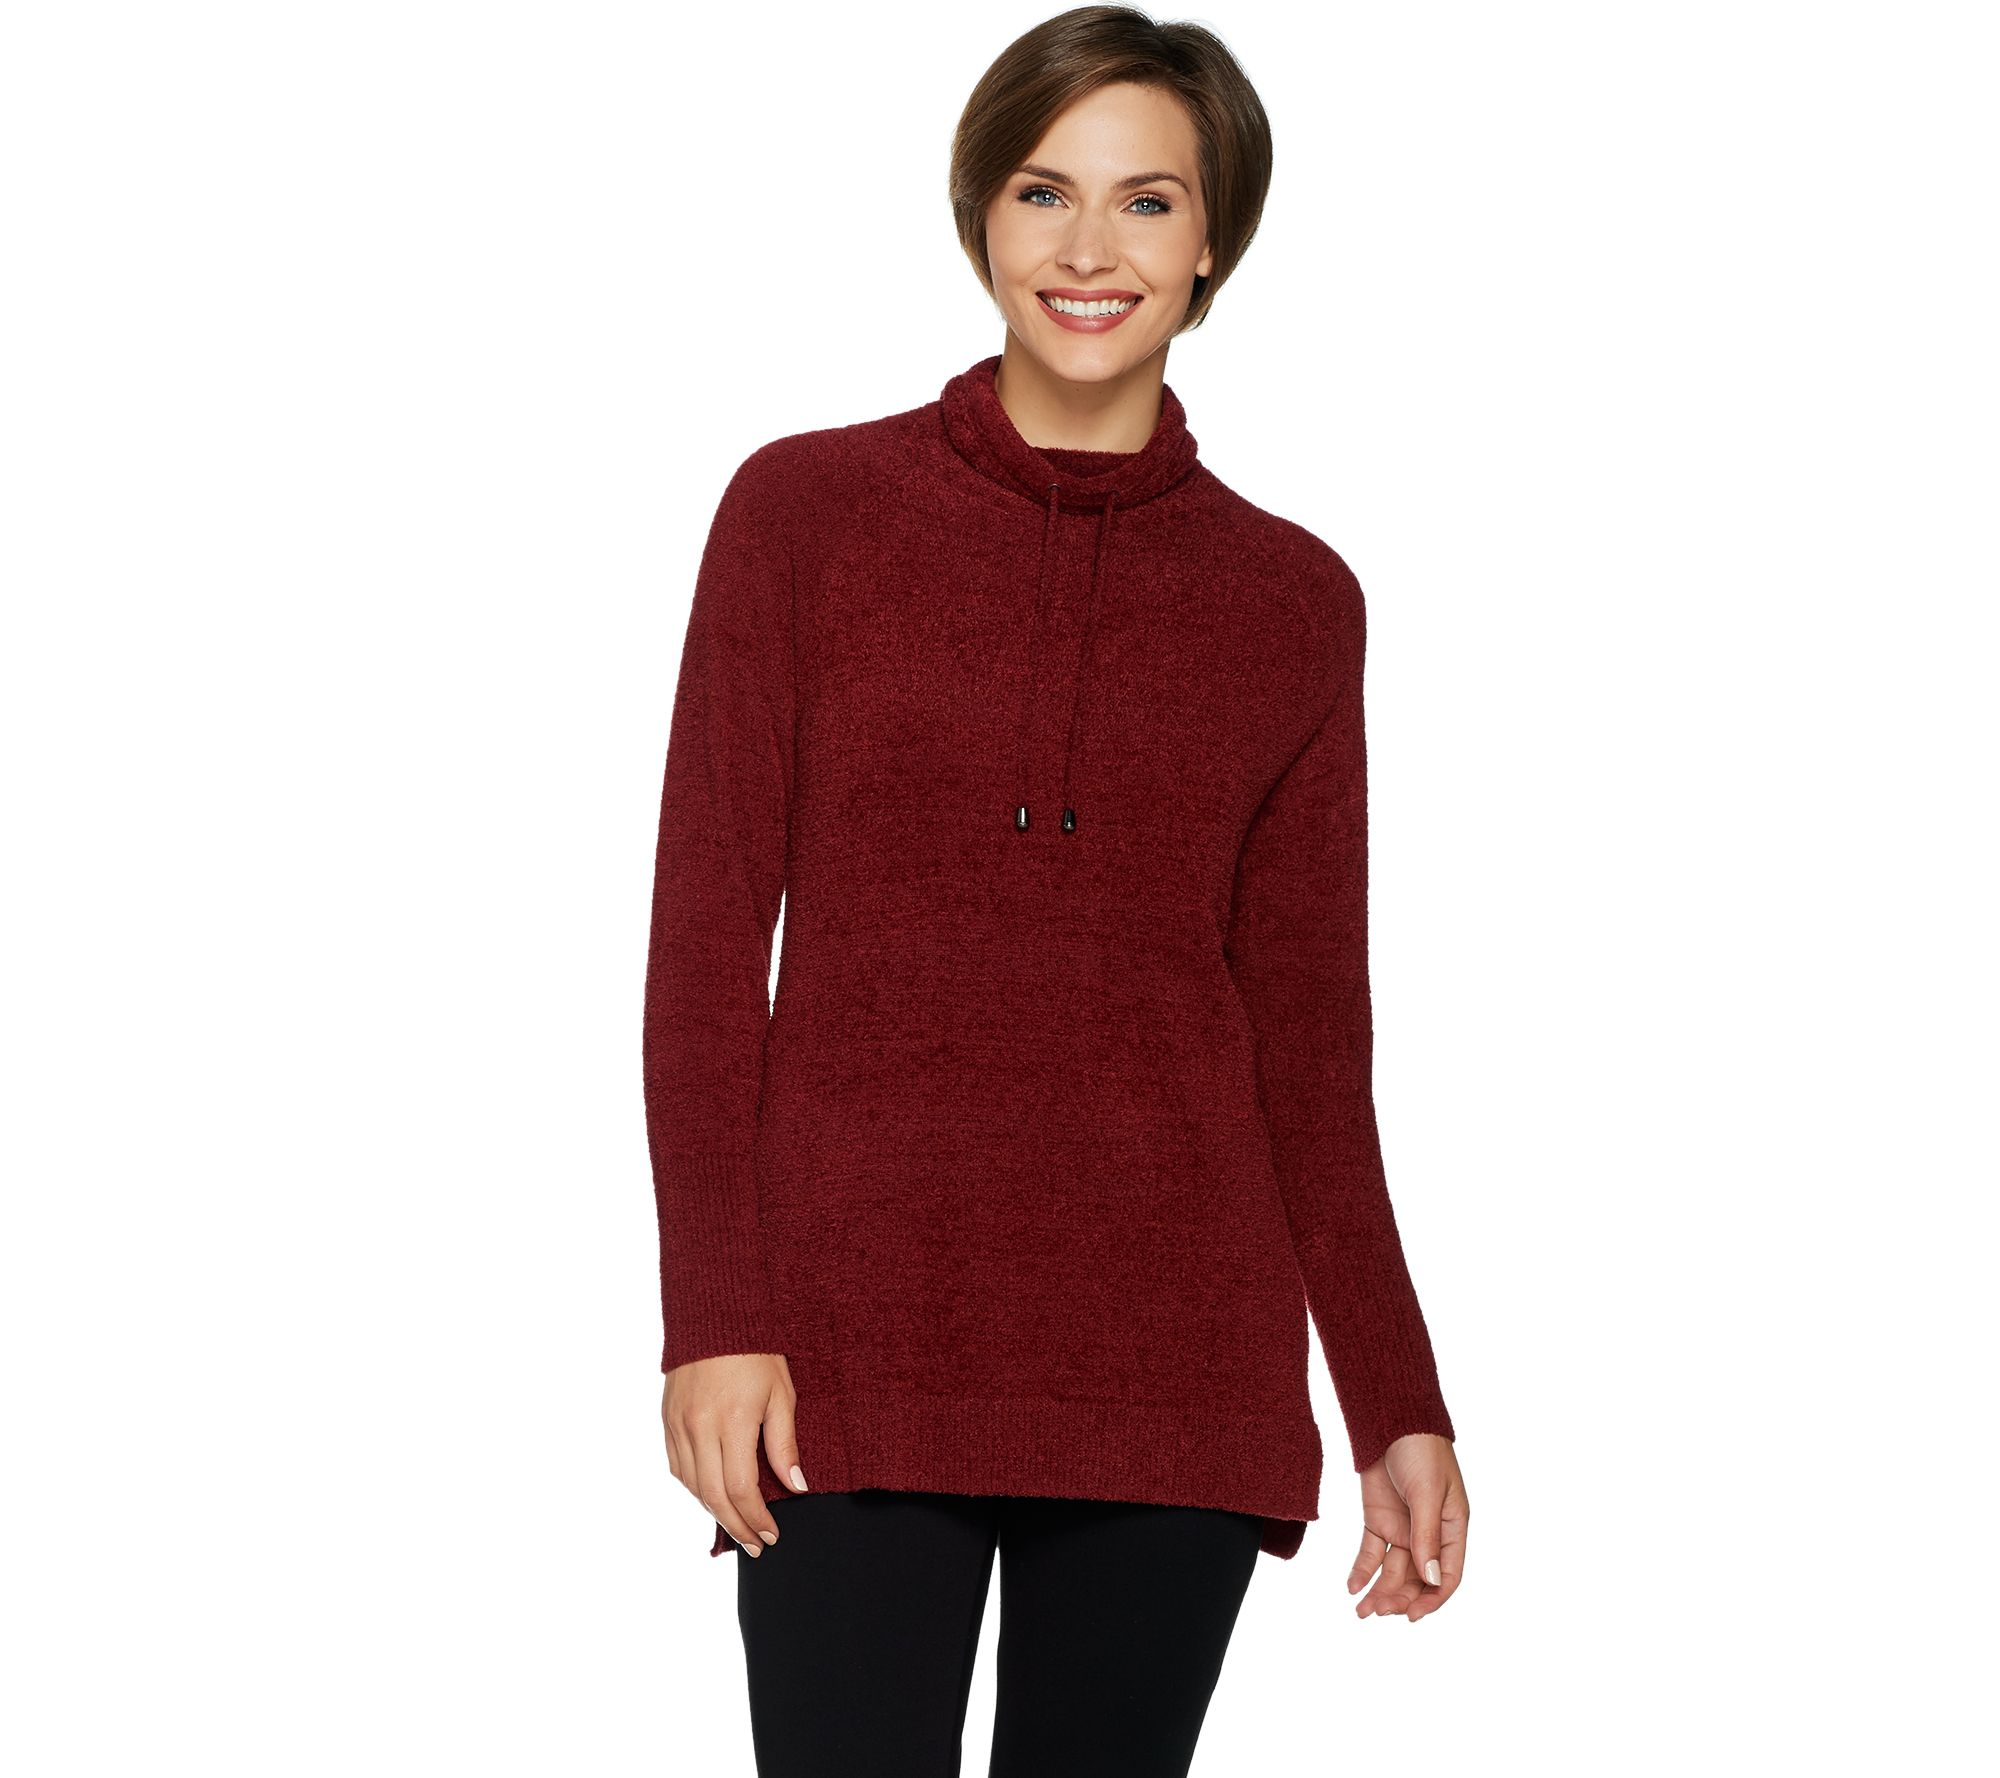 Pullovers — Sweaters & Cardigans — Fashion — QVC.com